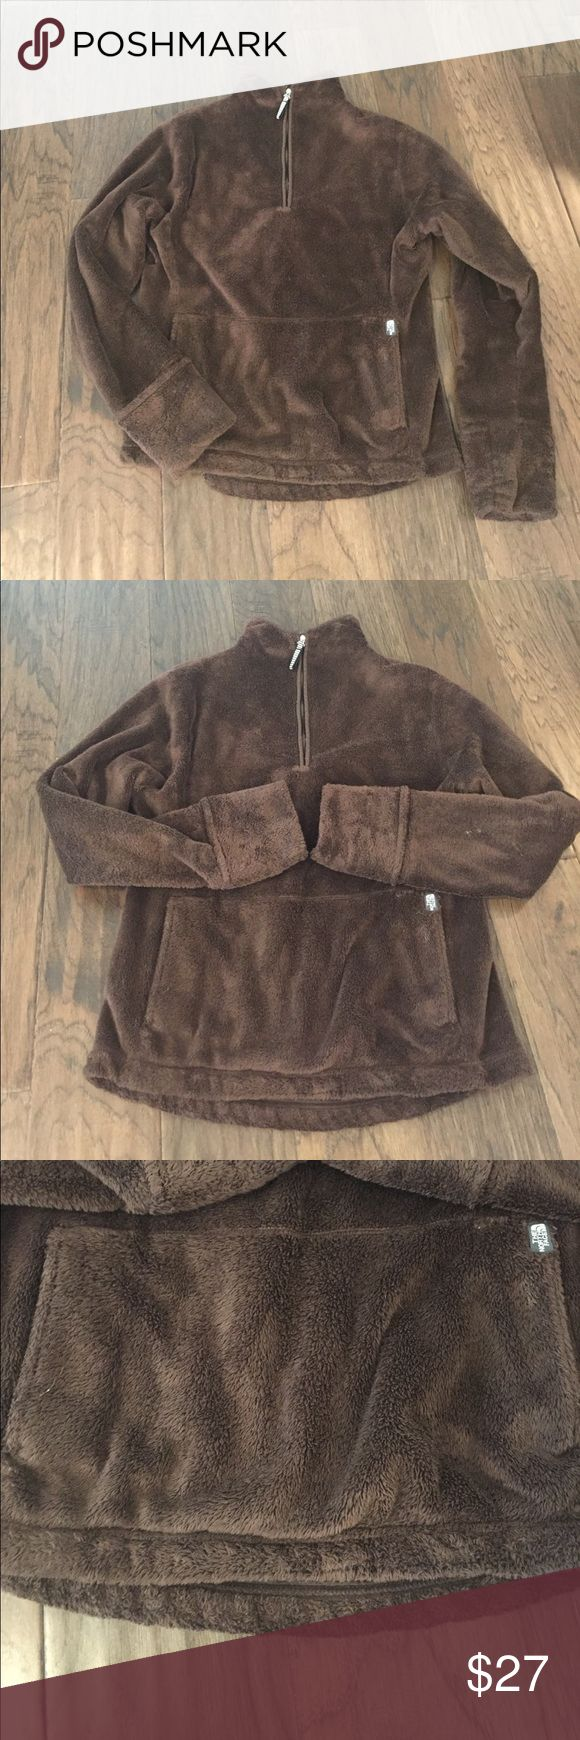 North Face Pullover Brown 1/4 zip Pullover from The North Face. Hoodie pocket in front. Rolled sleeves. Great condition. Size small Tops Sweatshirts & Hoodies